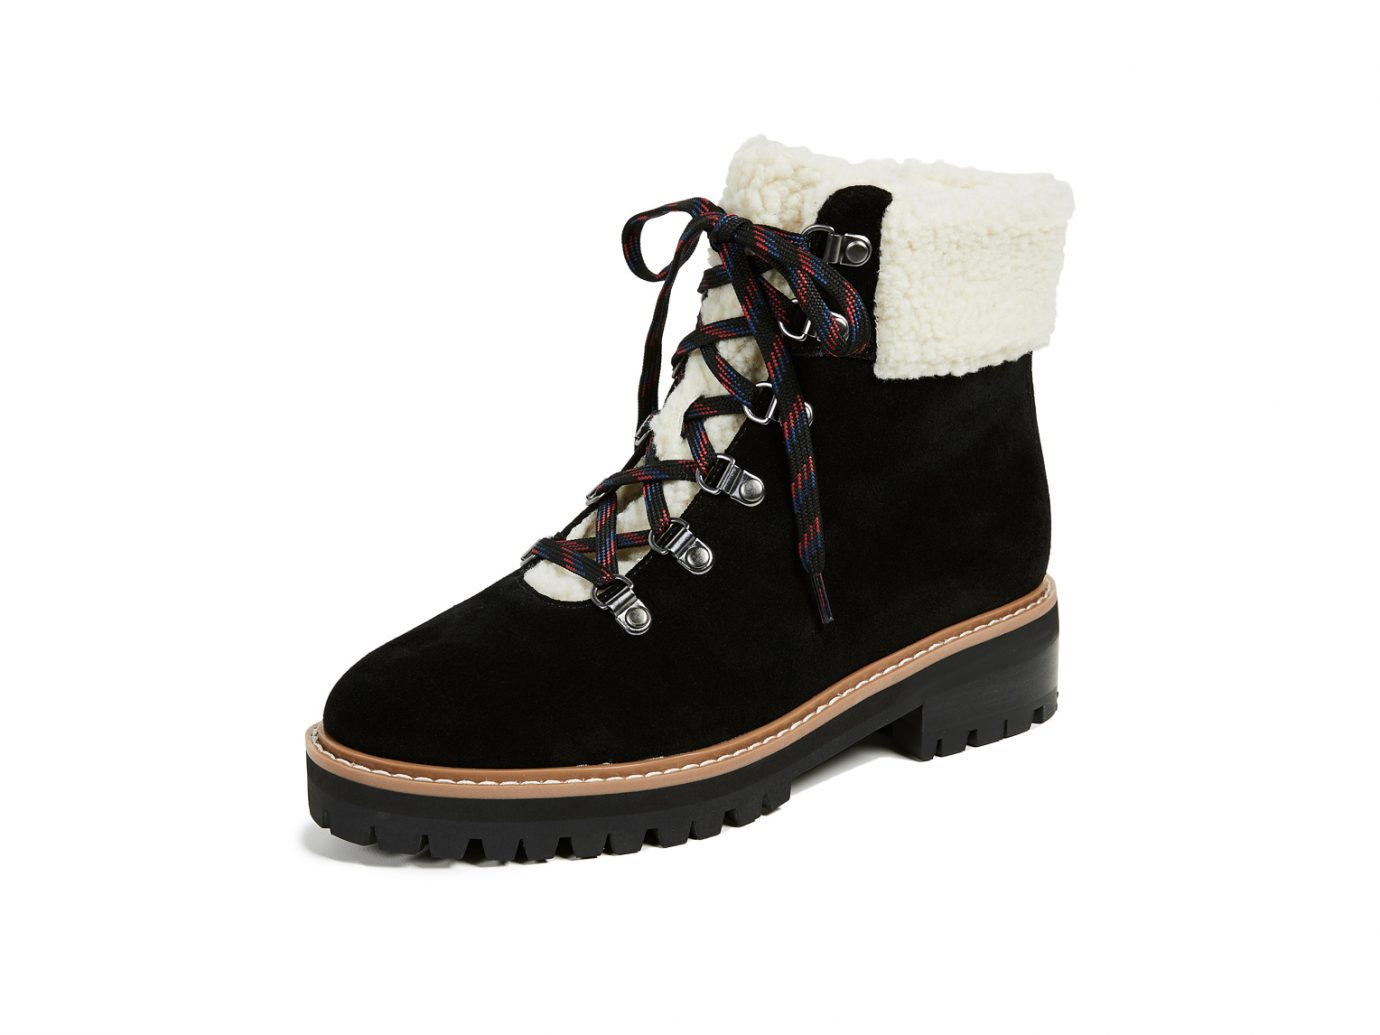 The Mix Mika Boots